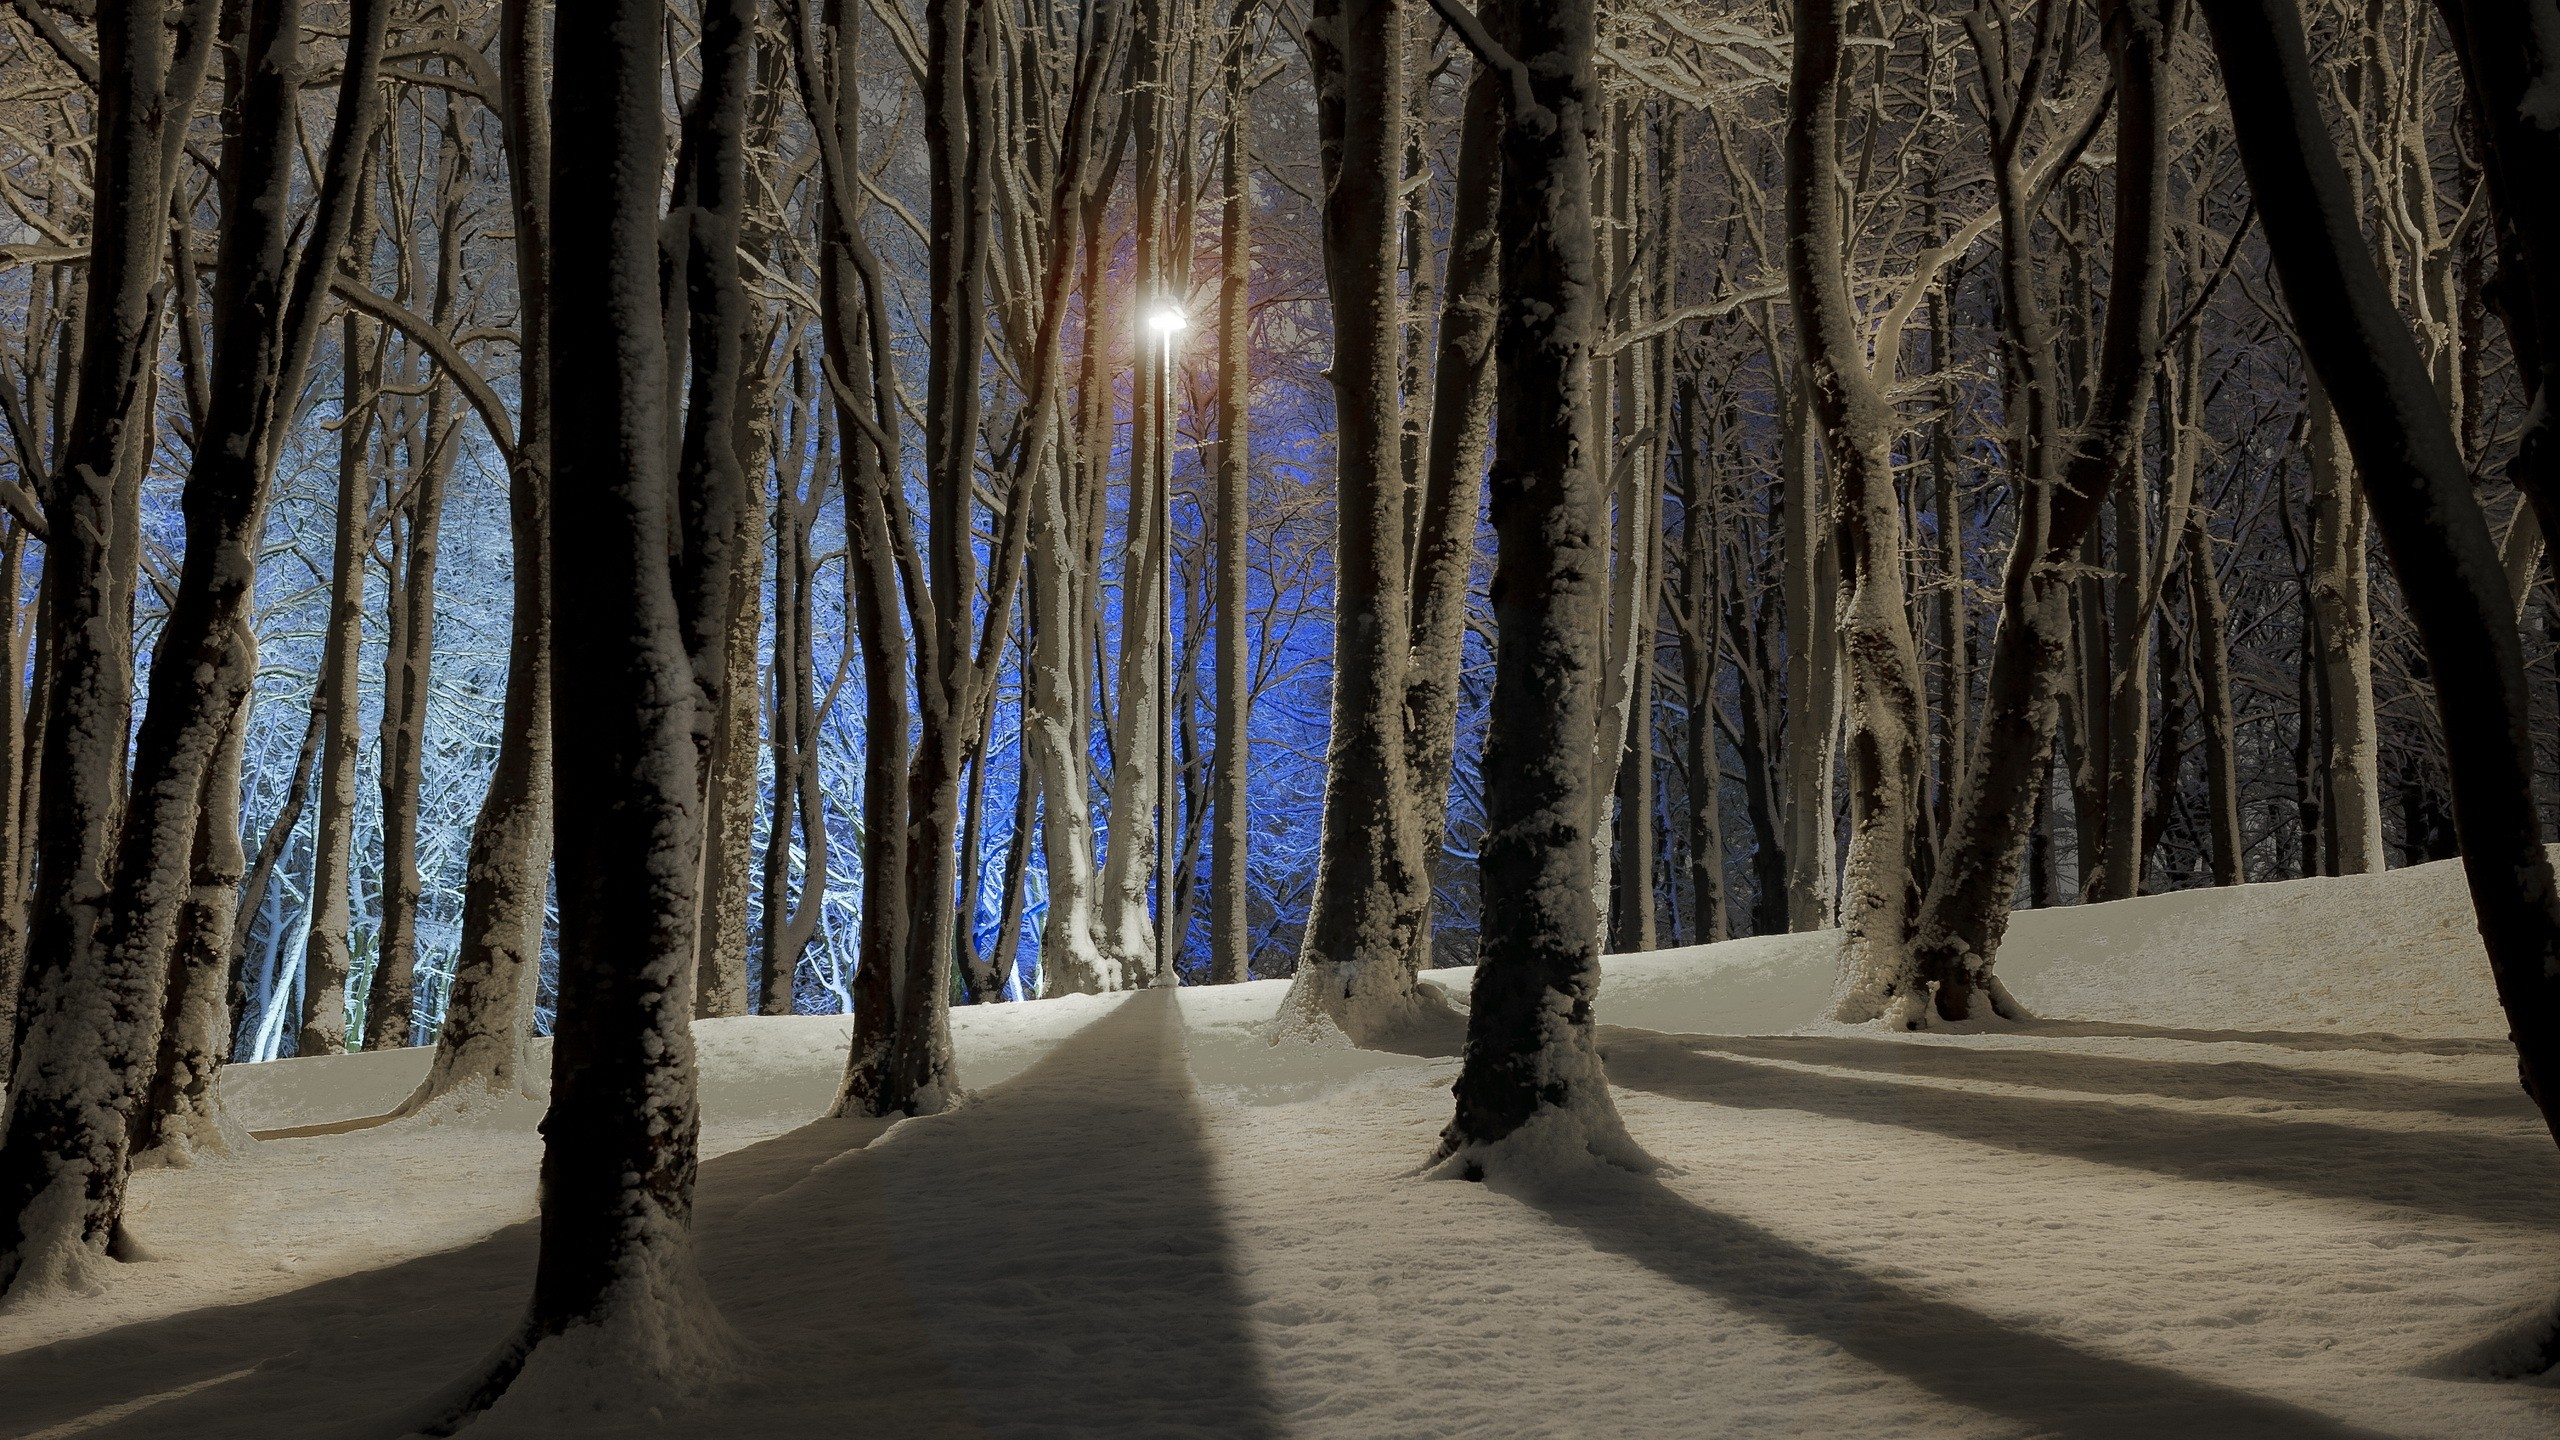 Night in the winter forest